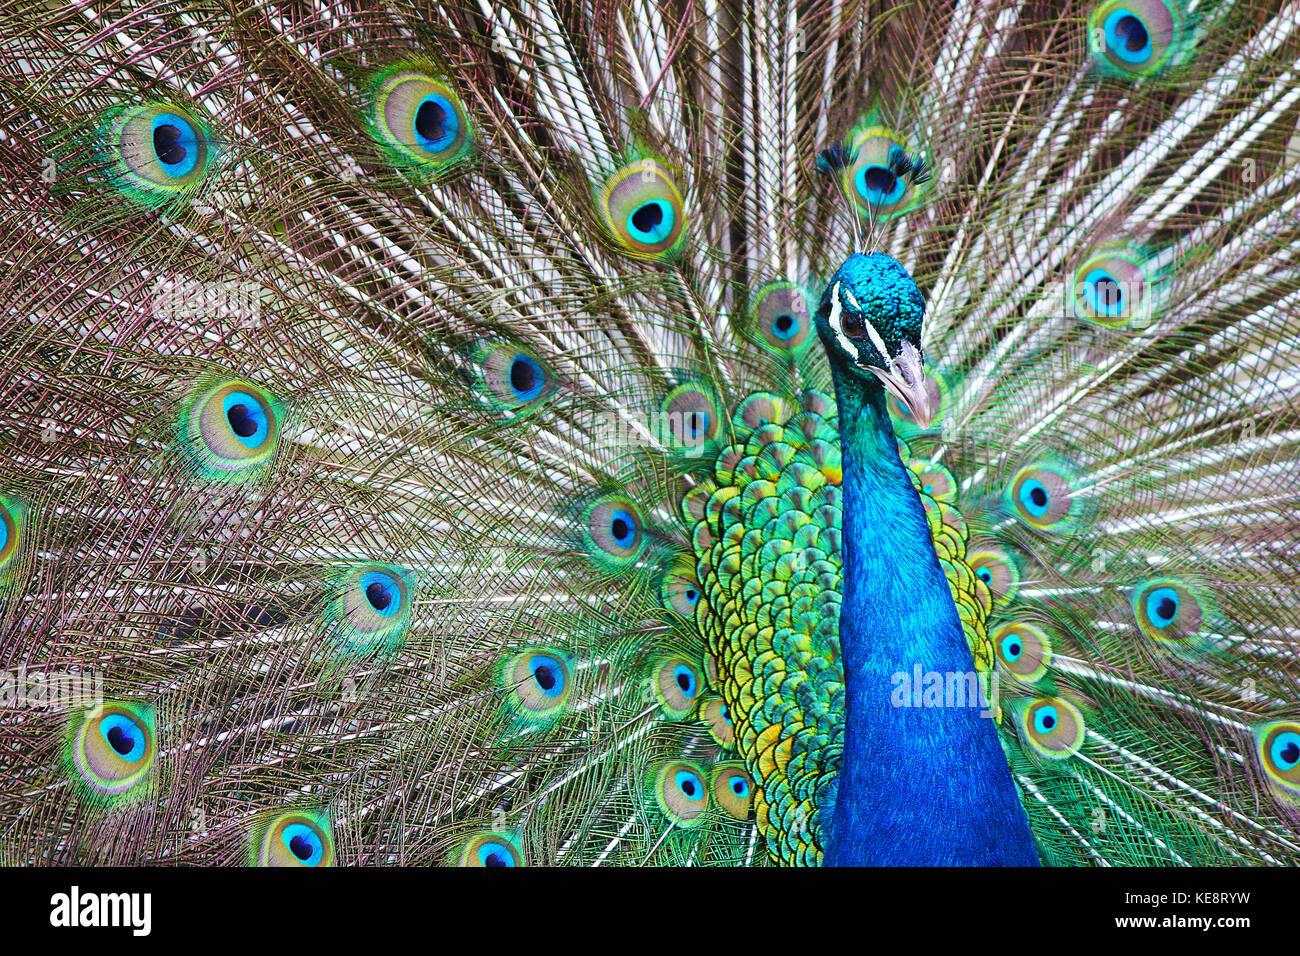 Peacock Glory. The spectacular feathers of the peacock - a showy bird that seems to know how beautiful it is. Magnificent - Stock Image